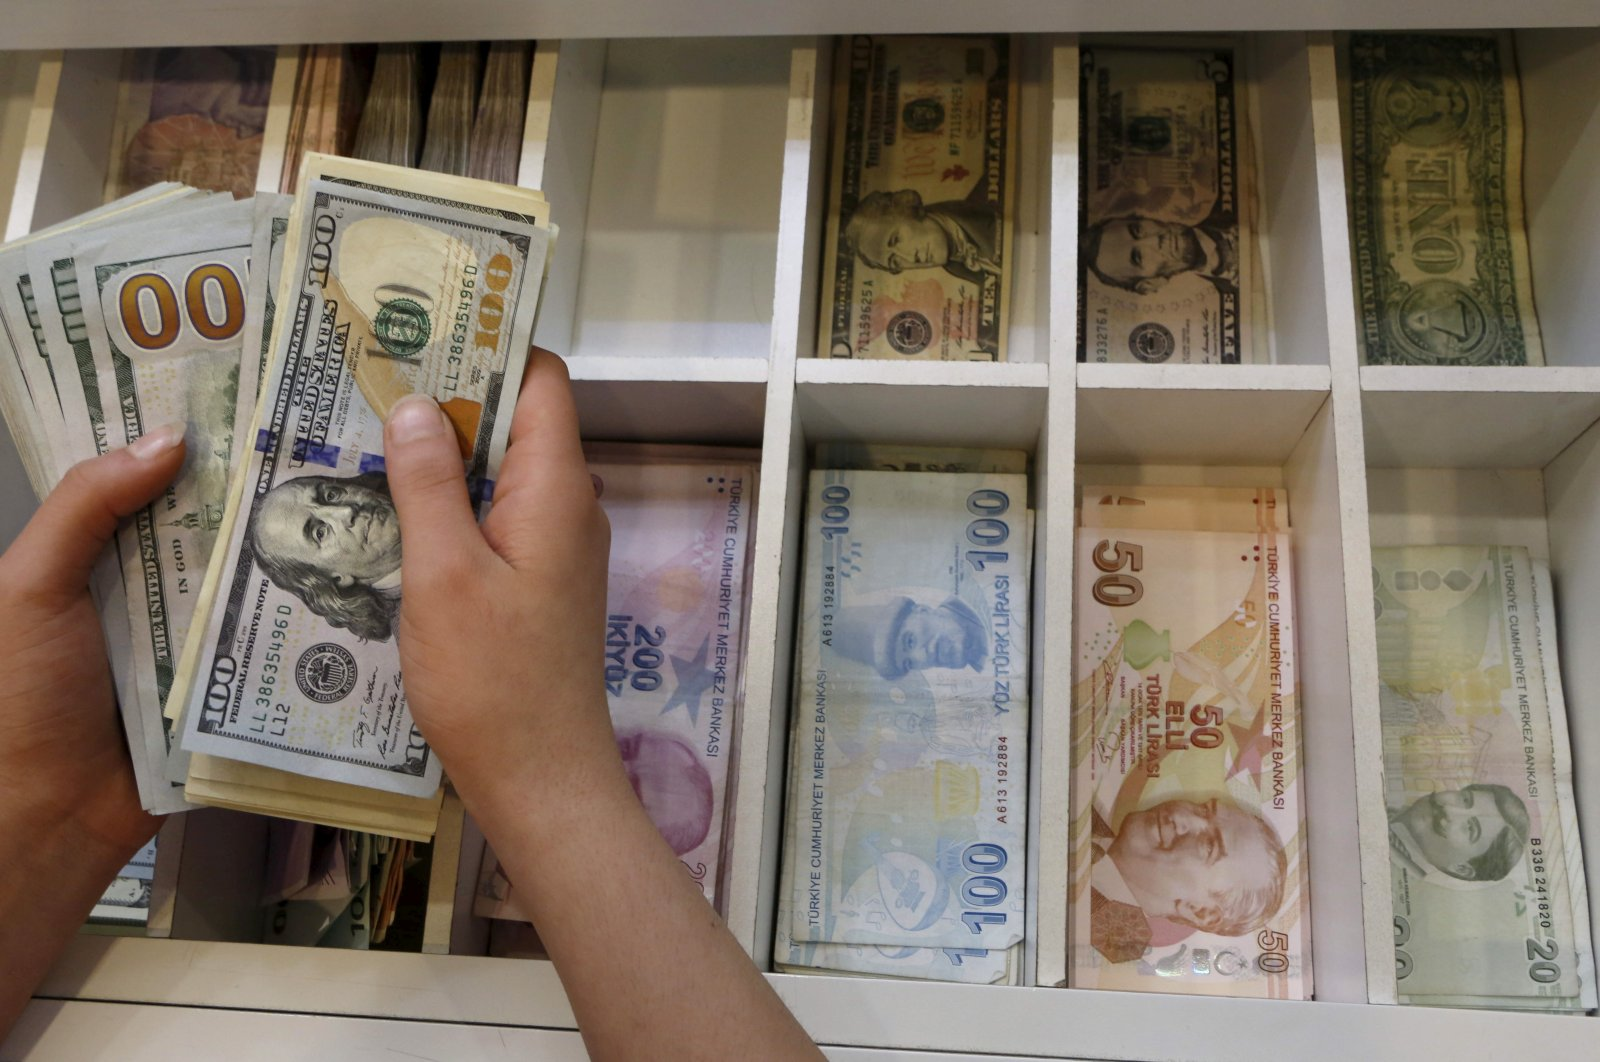 A money changer counts U.S. dollar bills, with Turkish lira banknotes in the background, at a currency exchange office in central Istanbul, Turkey, Aug. 21, 2015. (Reuters Photo)